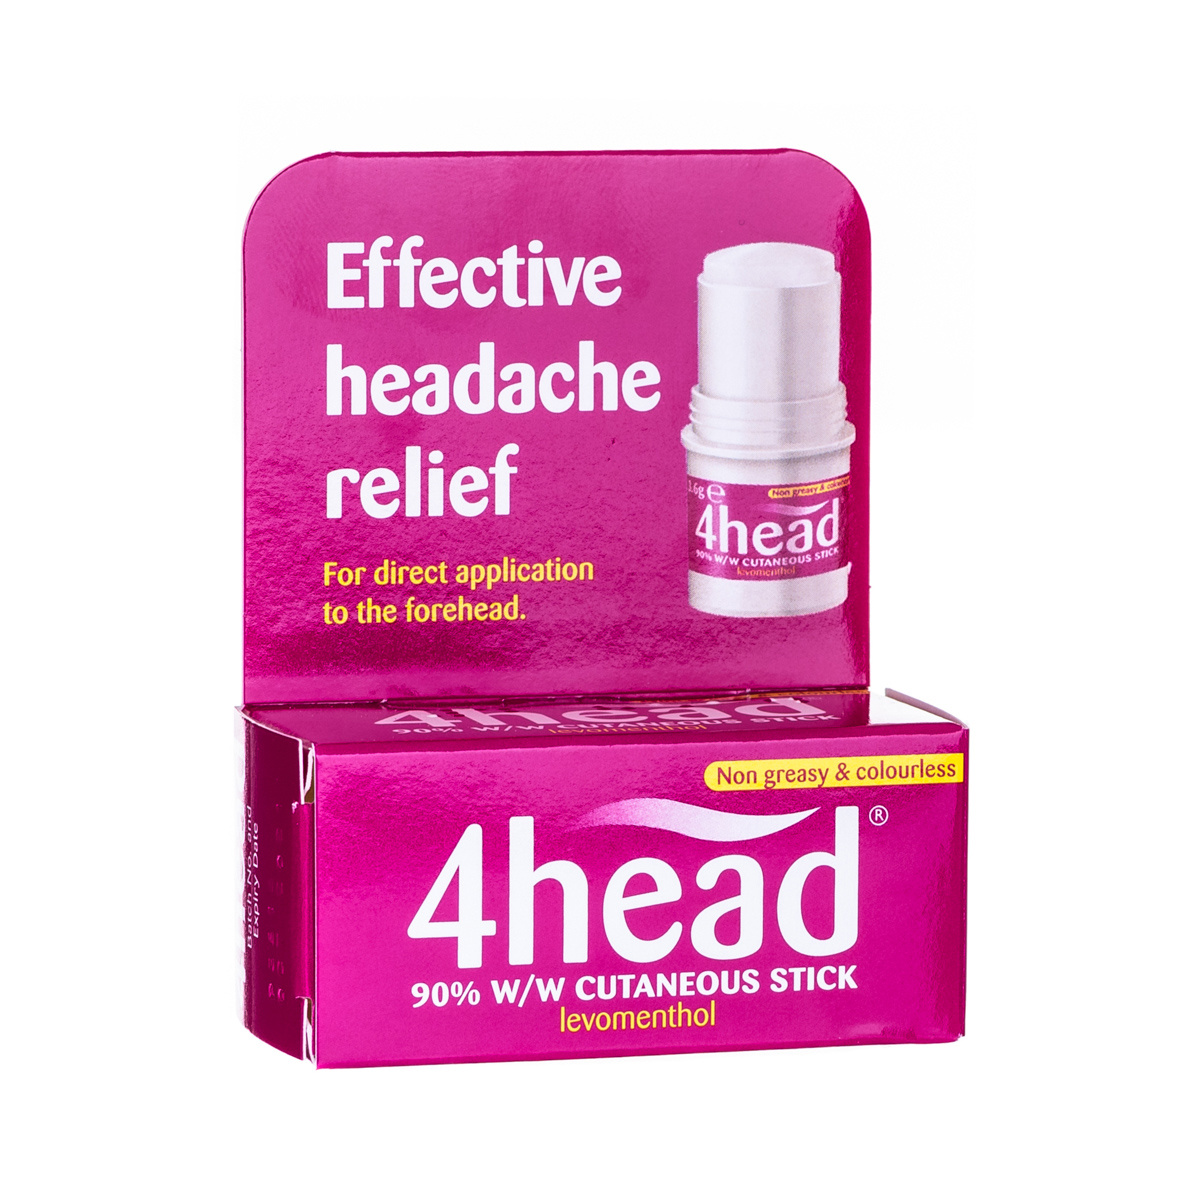 4head Cutaneous Stick